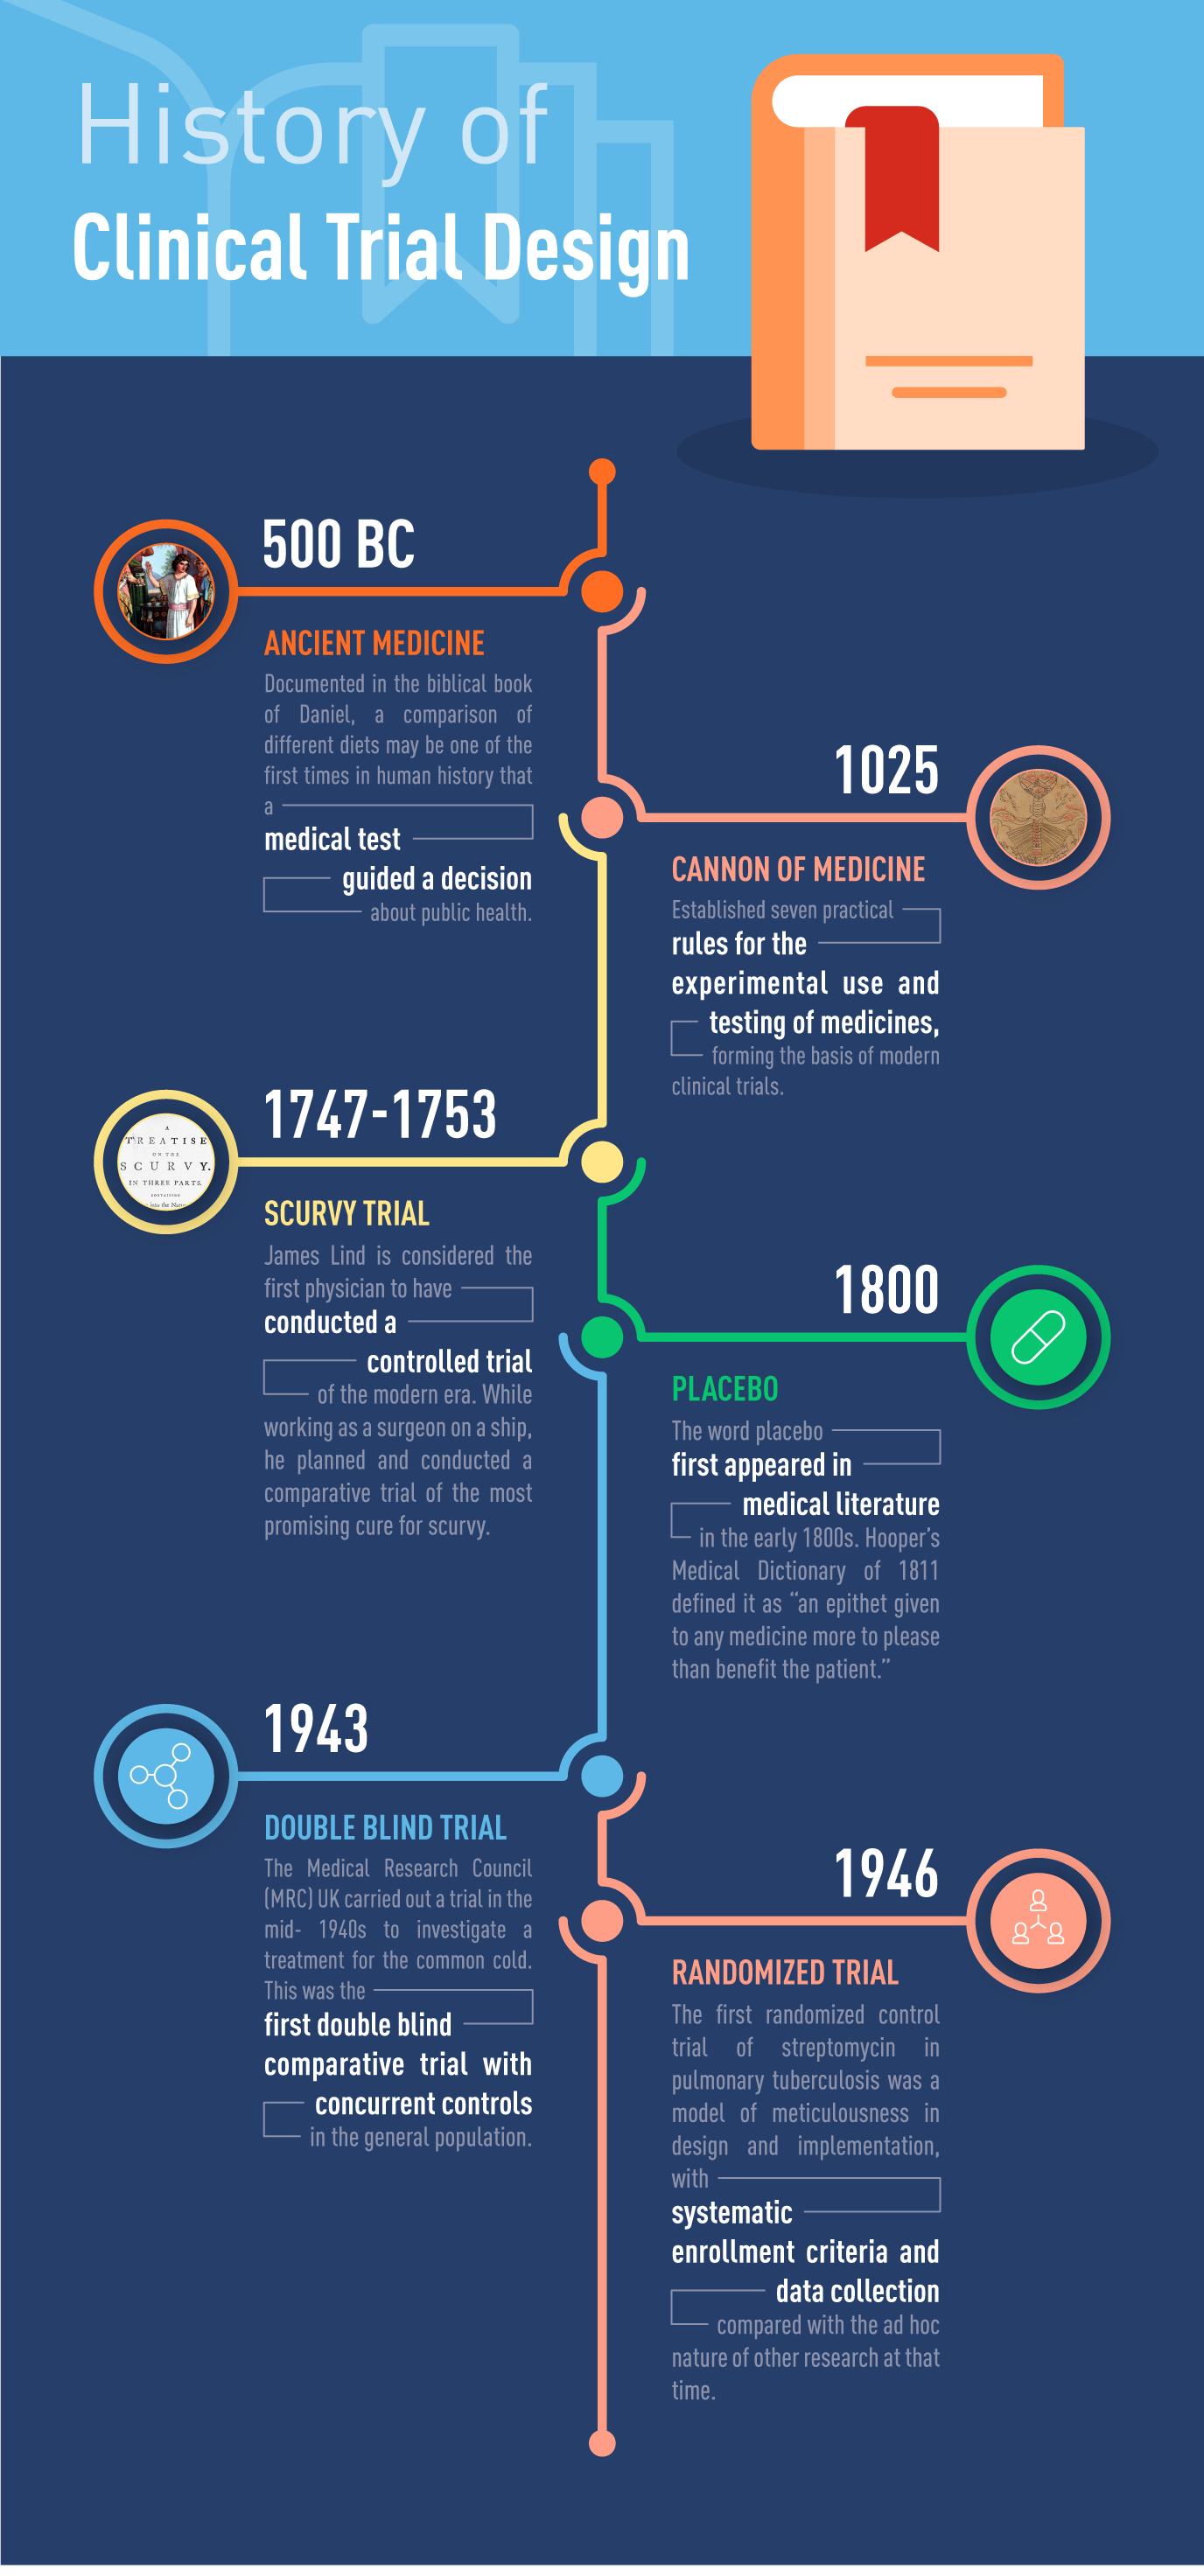 HistoryOfClinicalTrials ClinicalTrialDesign1 Infographic 18Jul2019-01